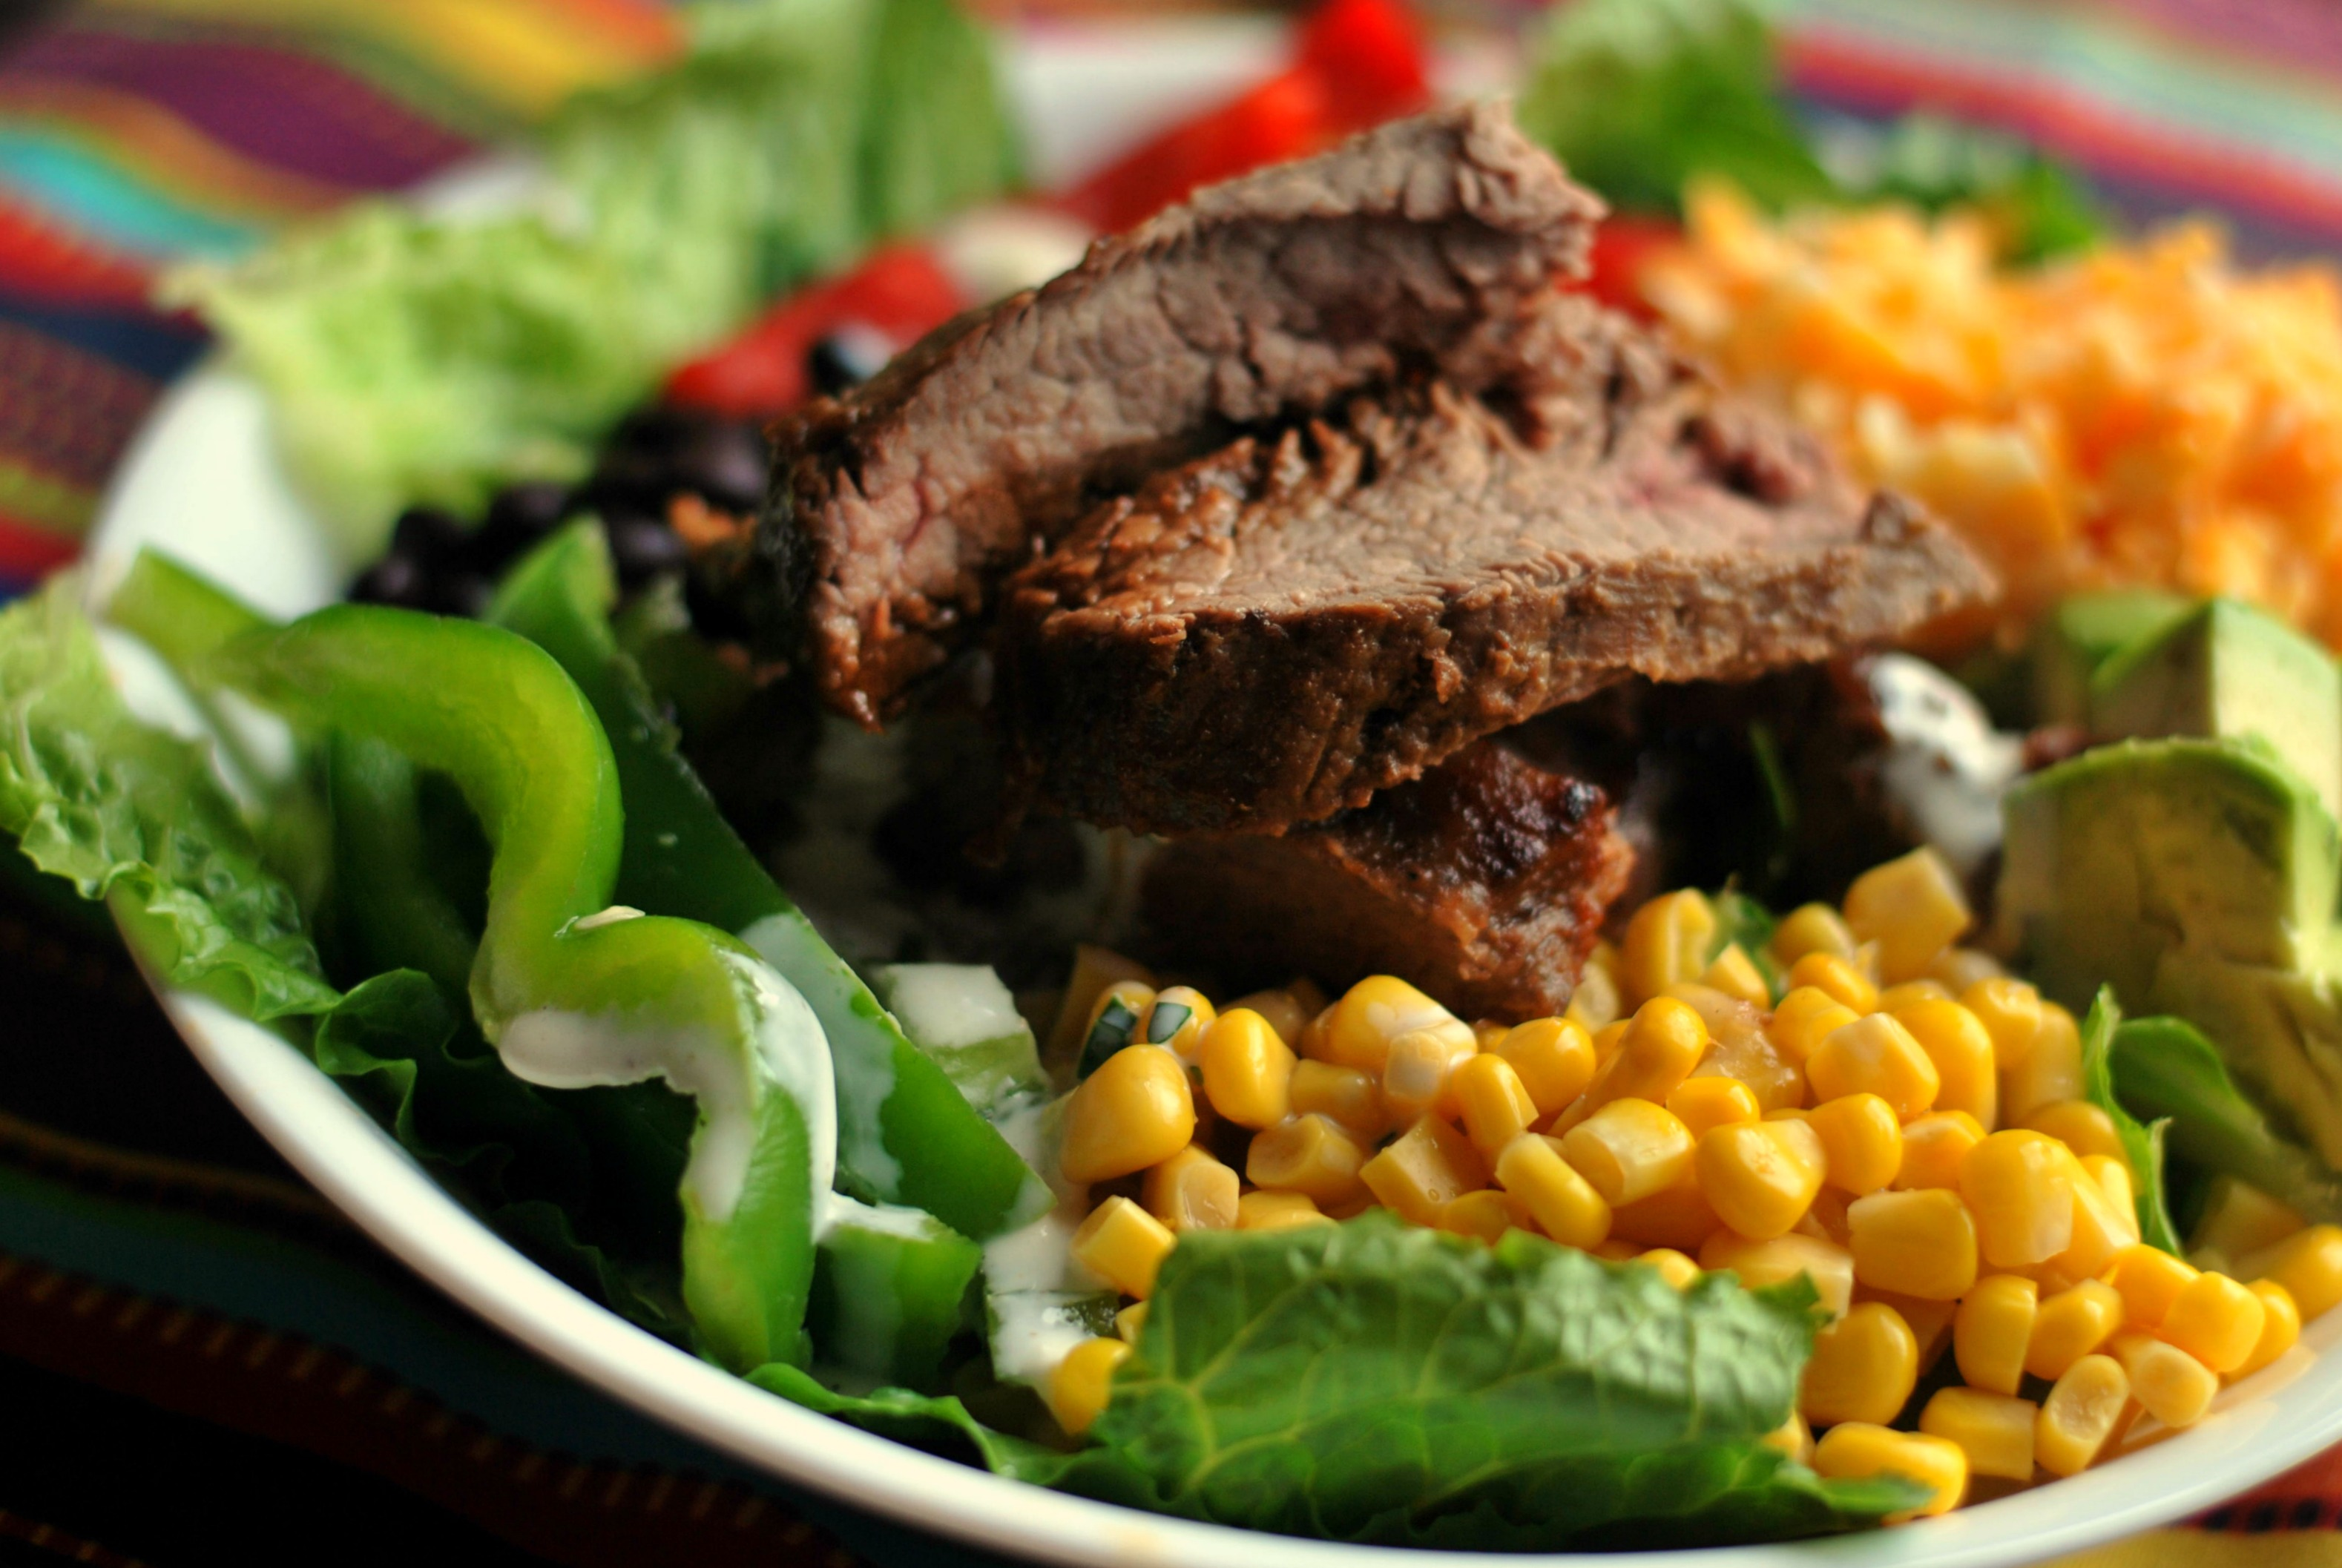 Southwest Steak Salad with Cilantro-Lime Buttermilk Dressing